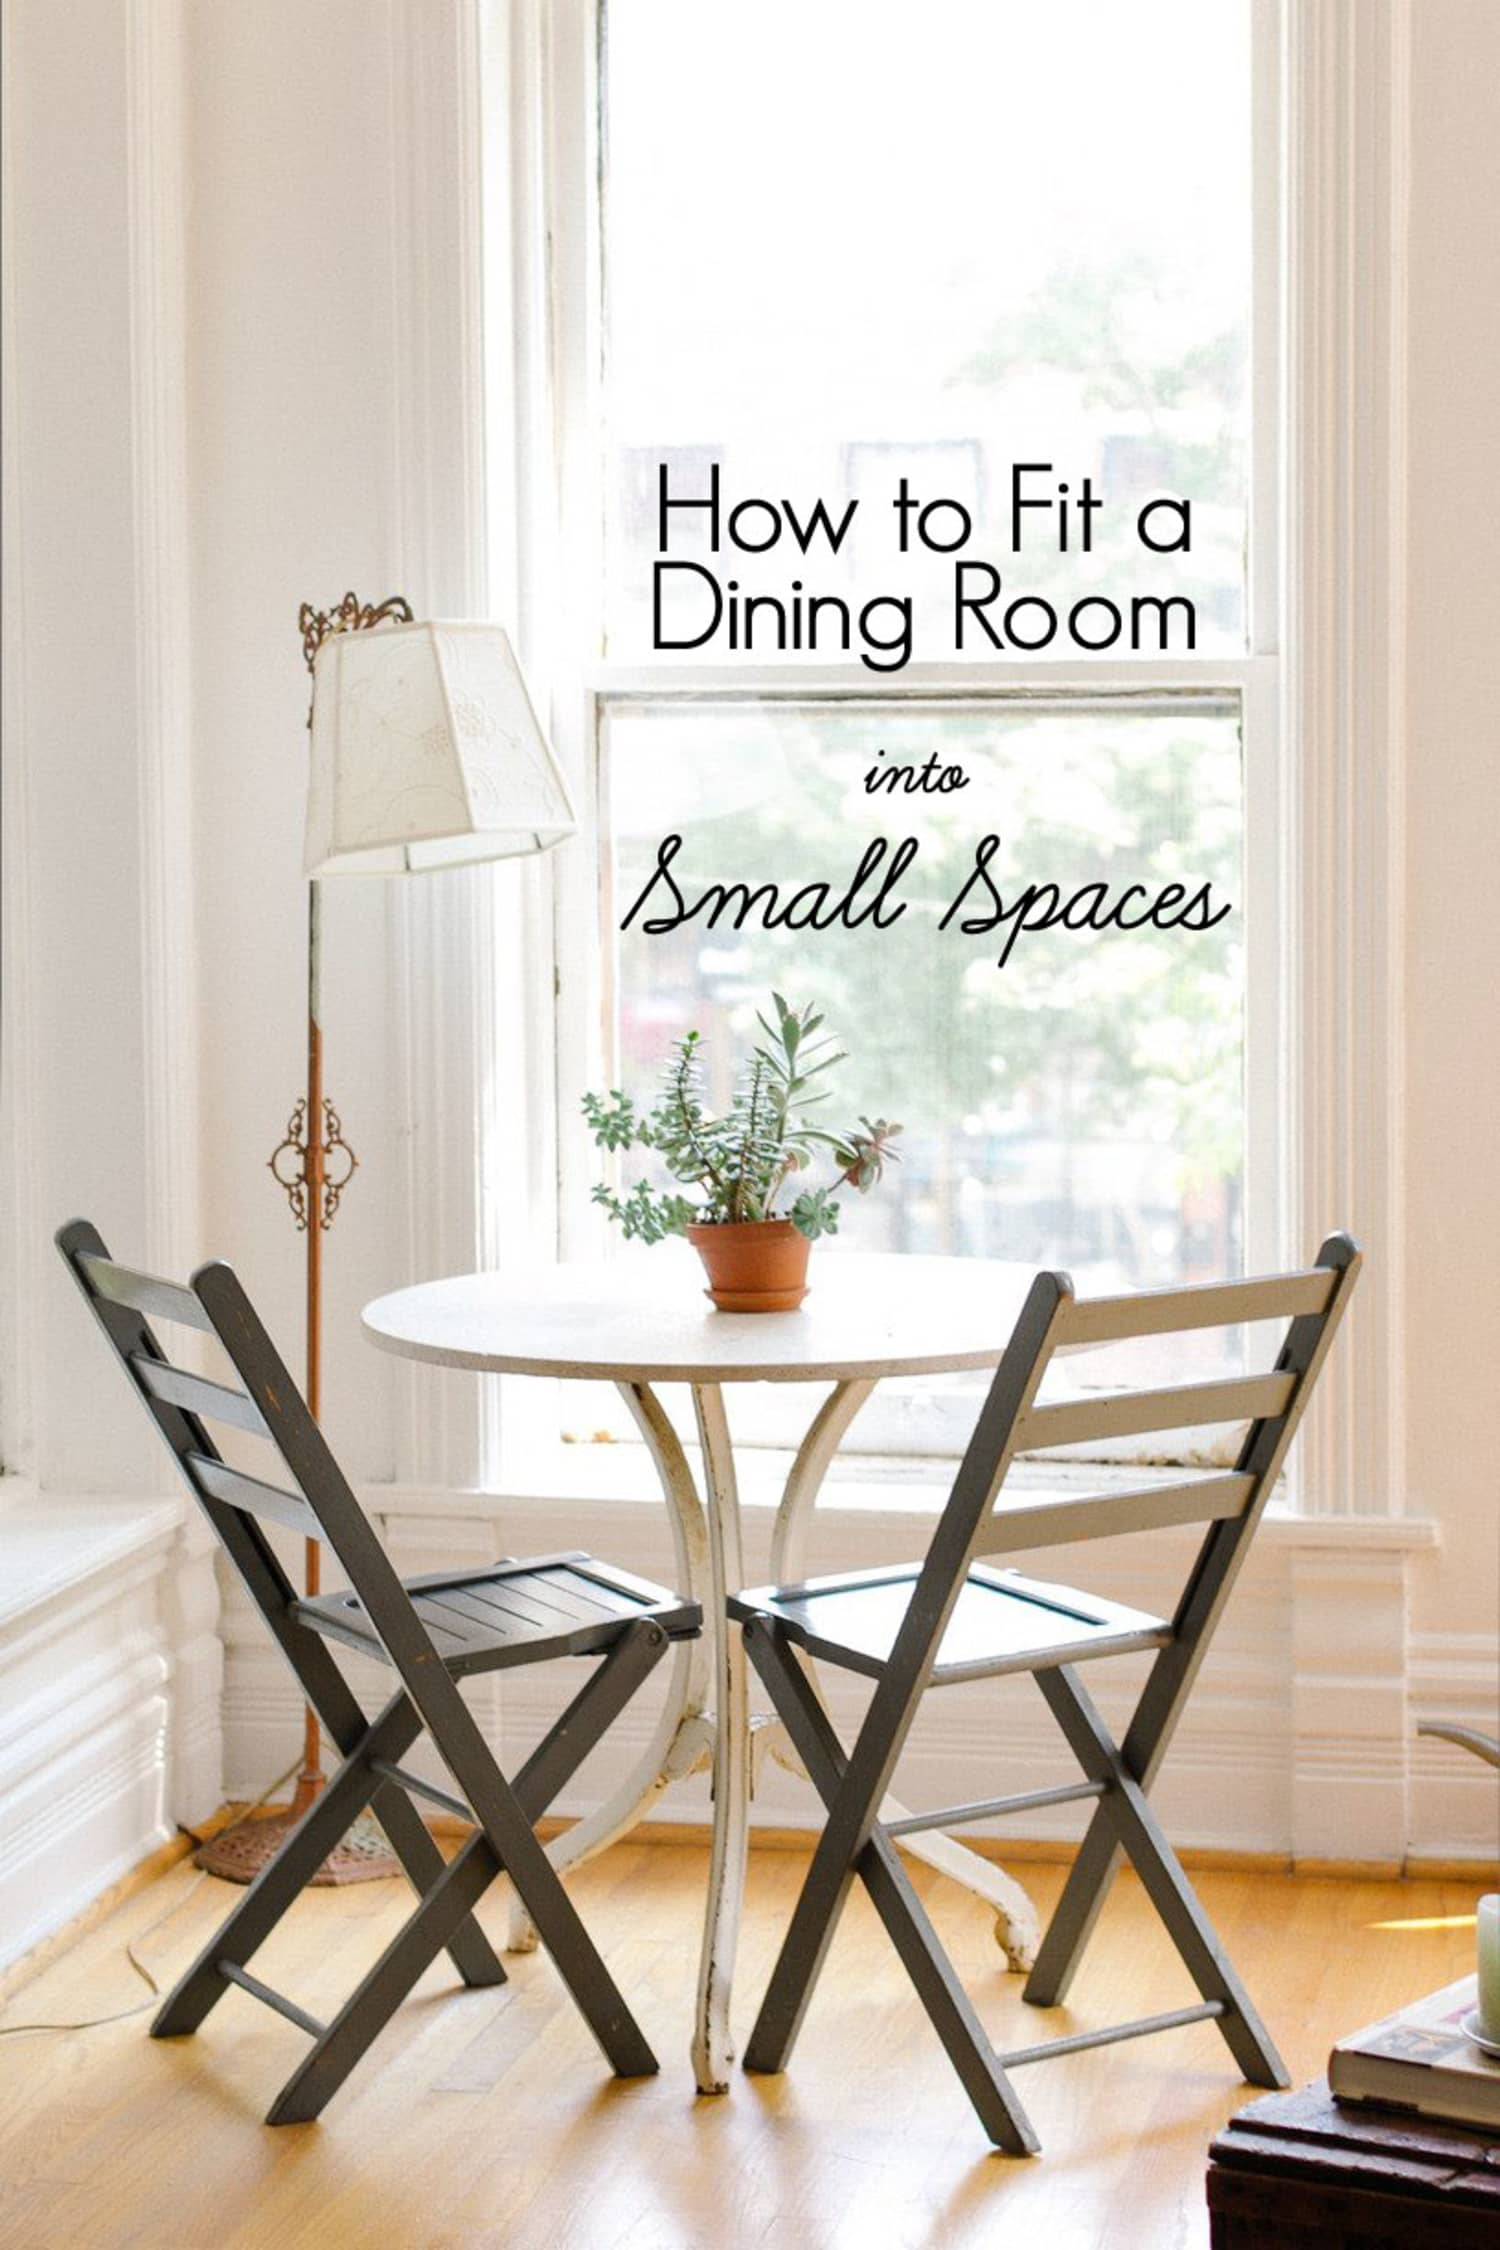 How To Fit a Dining Room Into Small Spaces | Apartment Therapy